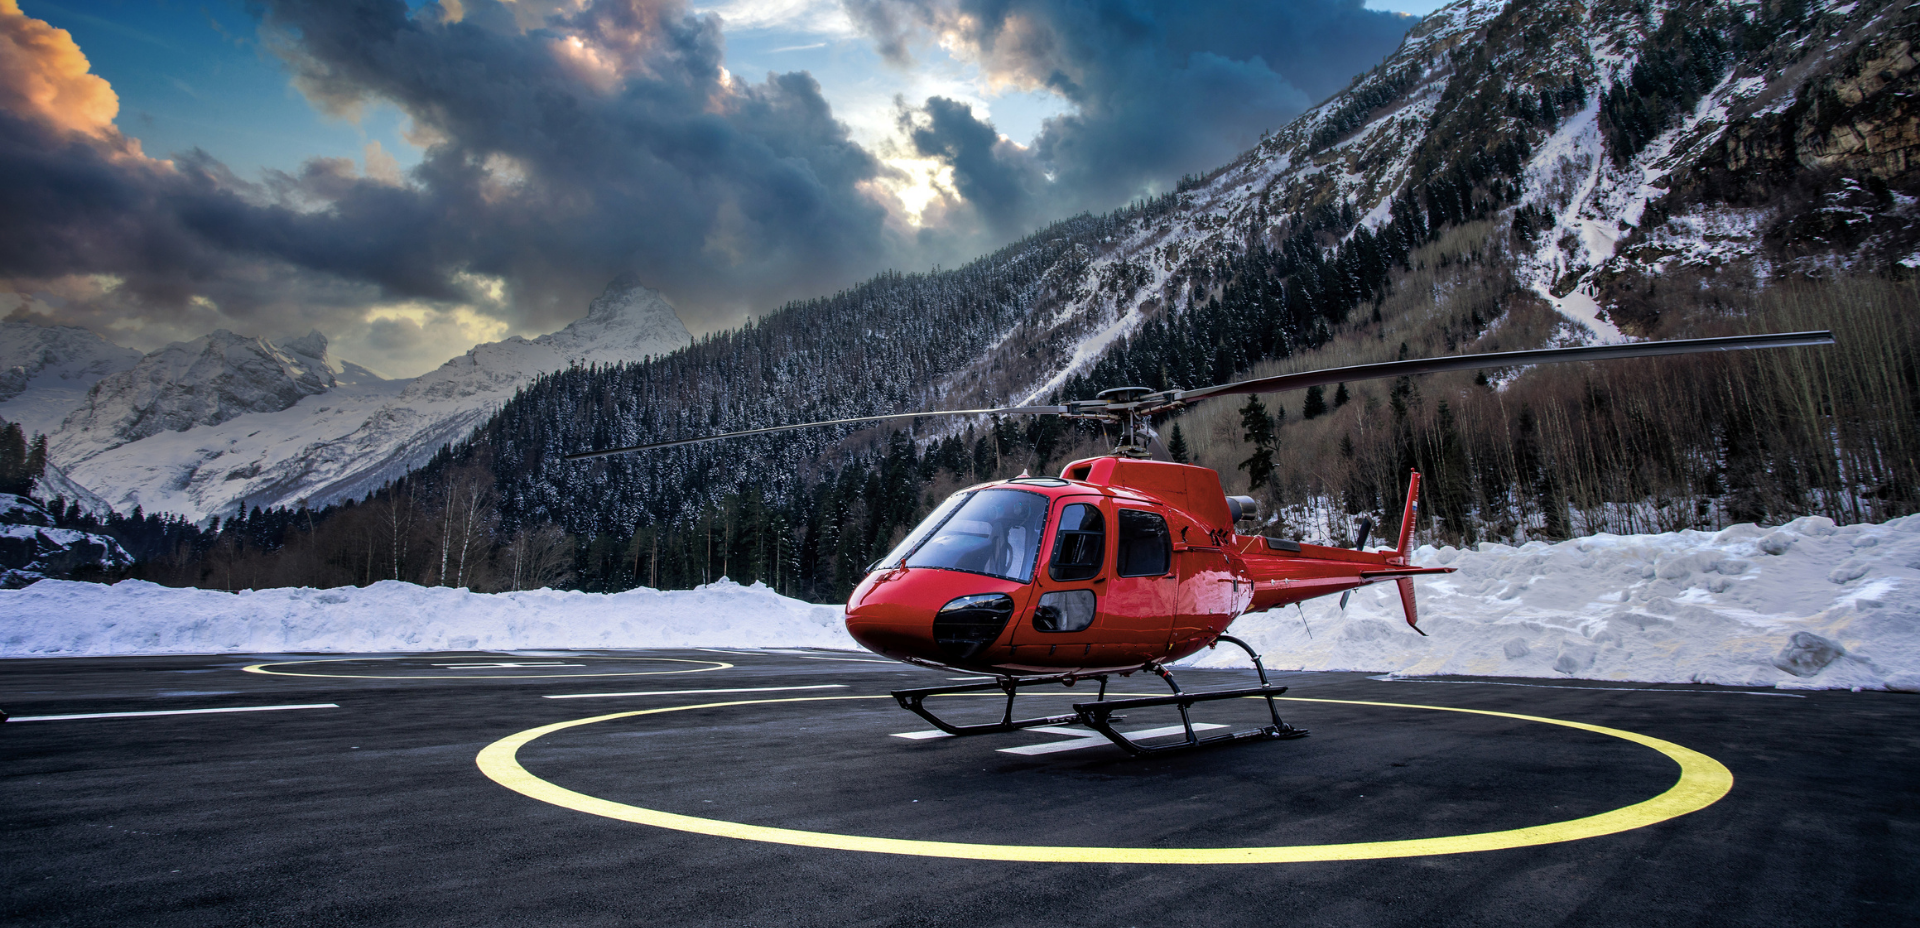 heli connections helicopter sales